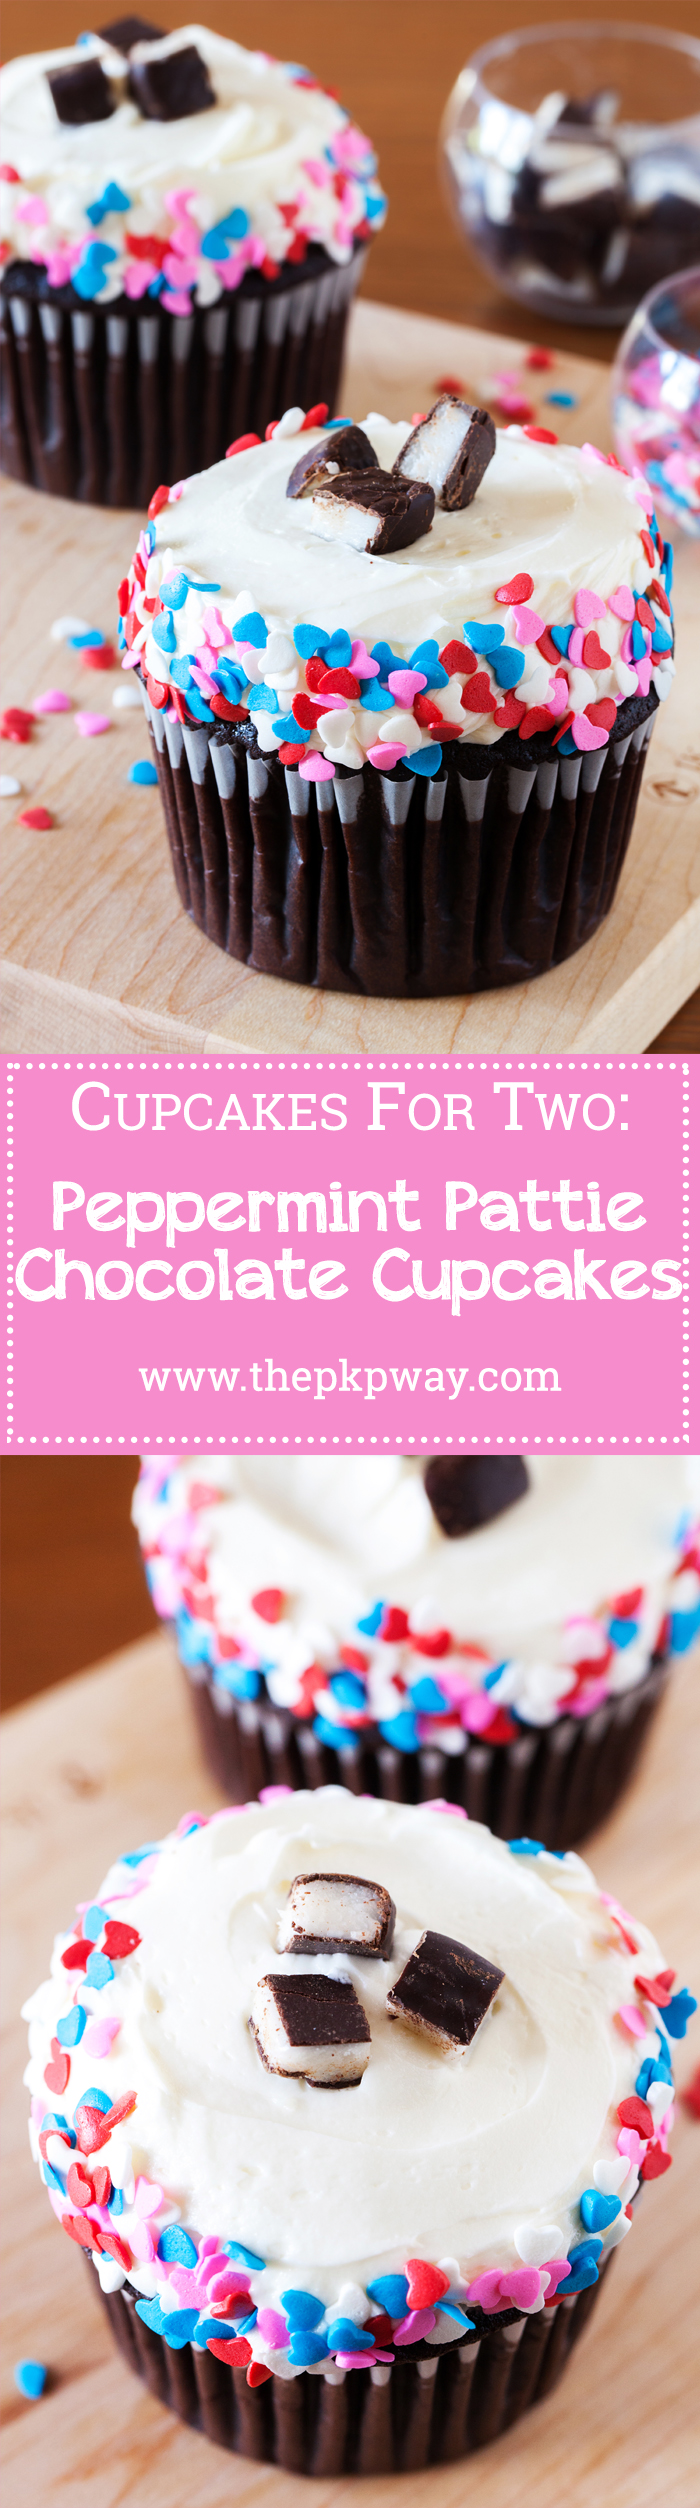 Valentine's Day Peppermint Pattie Chocolate Cupcakes for Two. A chocolate cupcake recipe for two is perfect for you and your Valentine. Ultra-moist and topped with peppermint pattie buttercream.